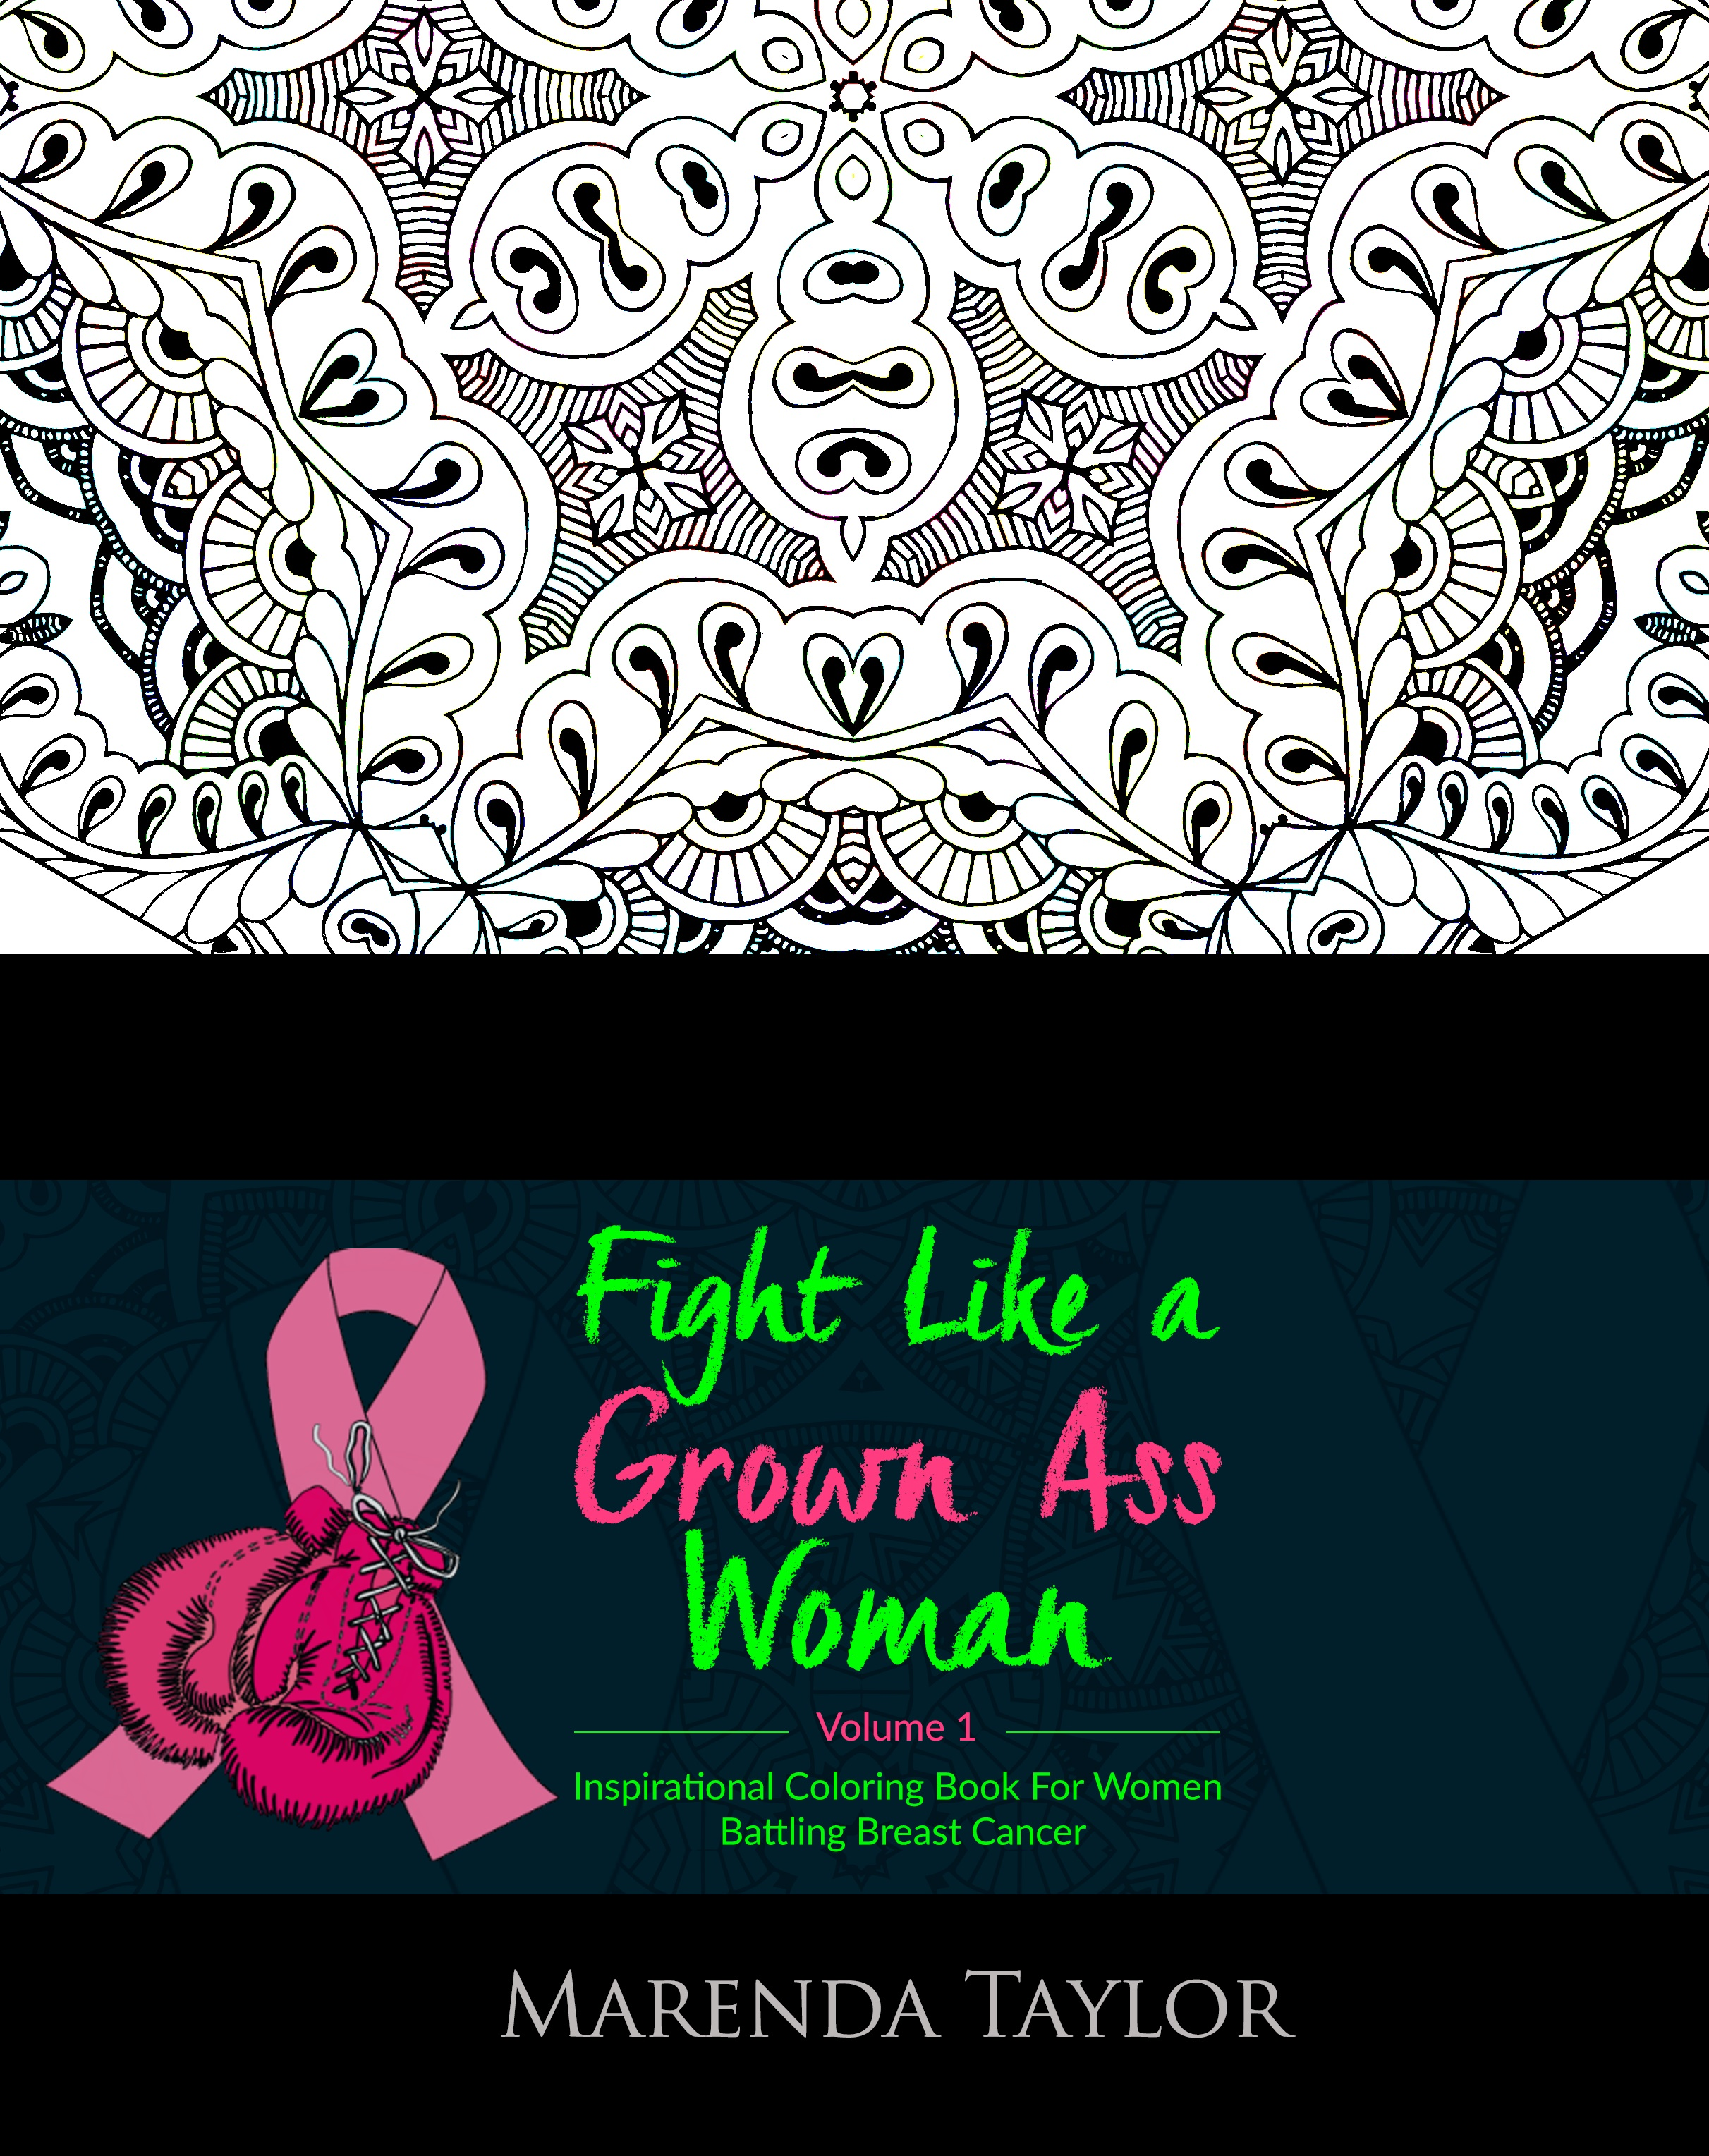 Fight Like a Grown Ass Woman Inspirational Coloring Book Volume 1